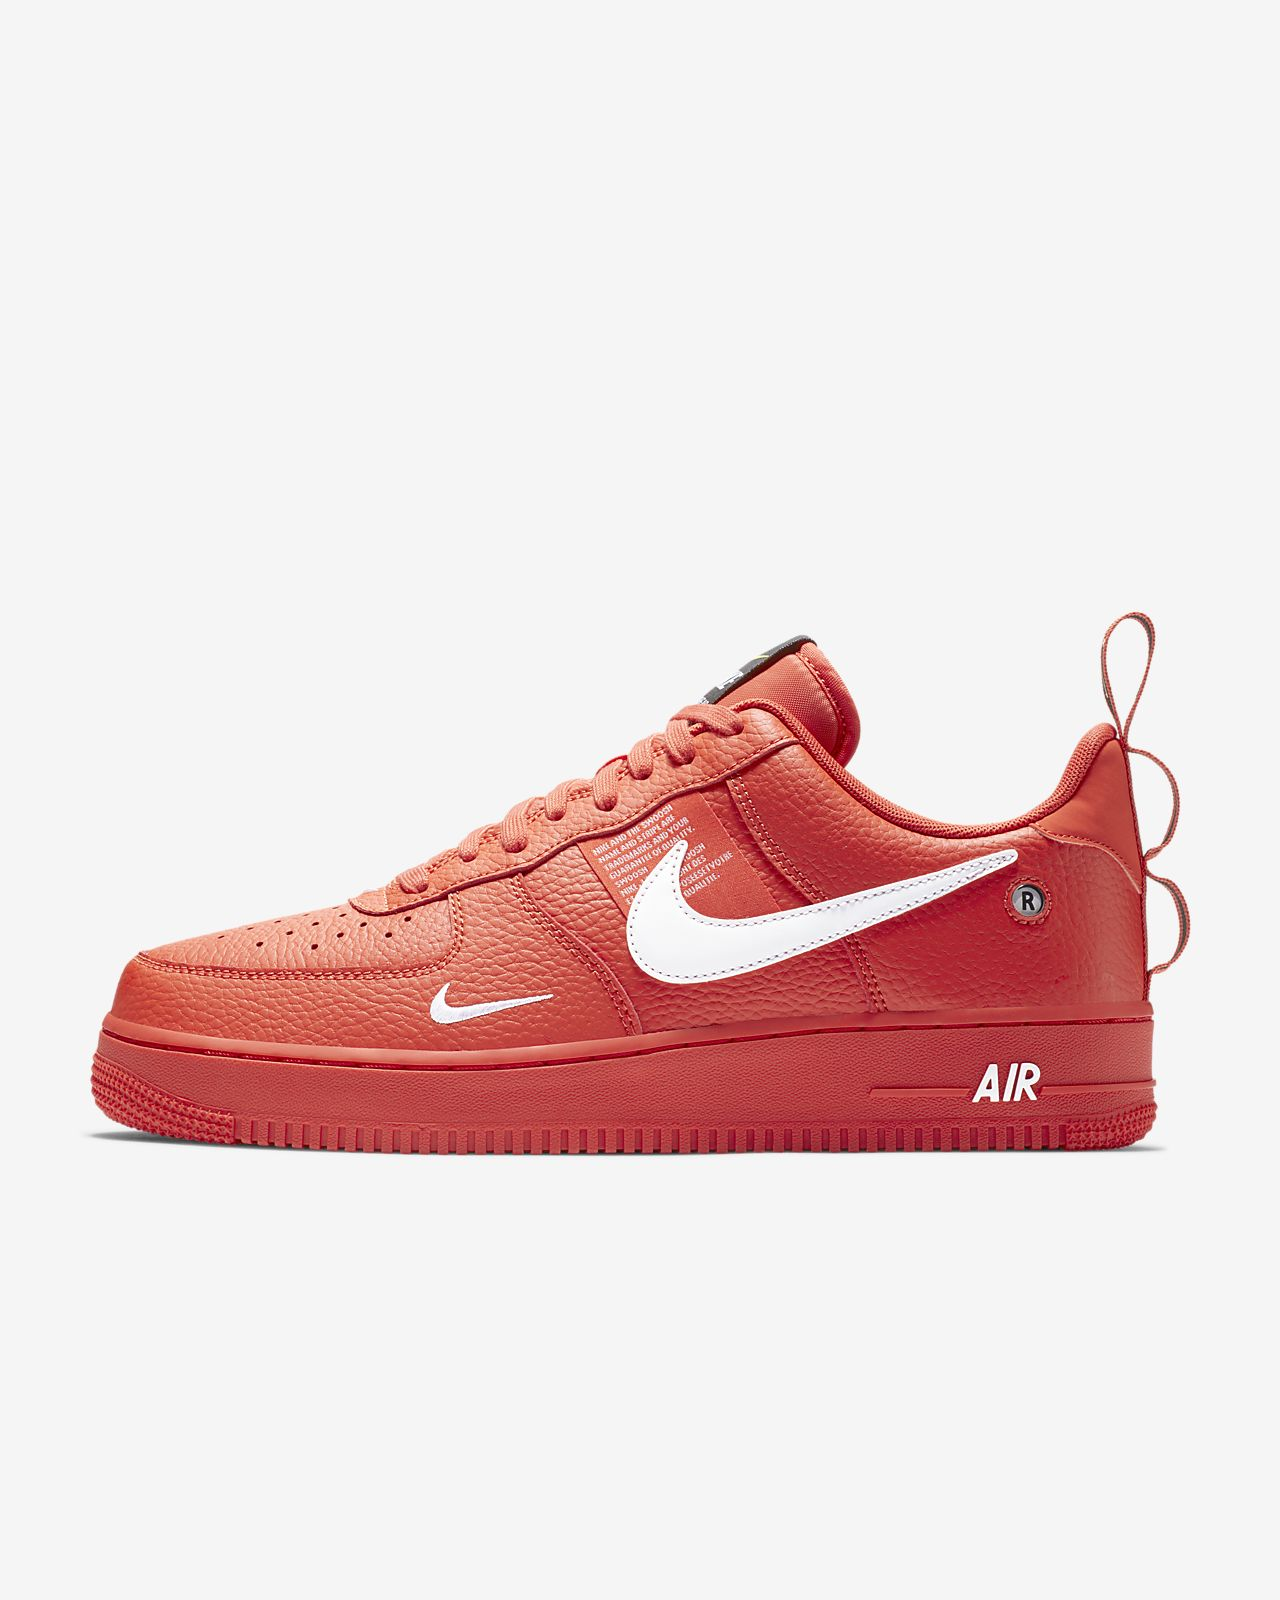 9210d13cb467d5 Nike Air Force 1  07 LV8 Utility Men s Shoe. Nike.com ZA